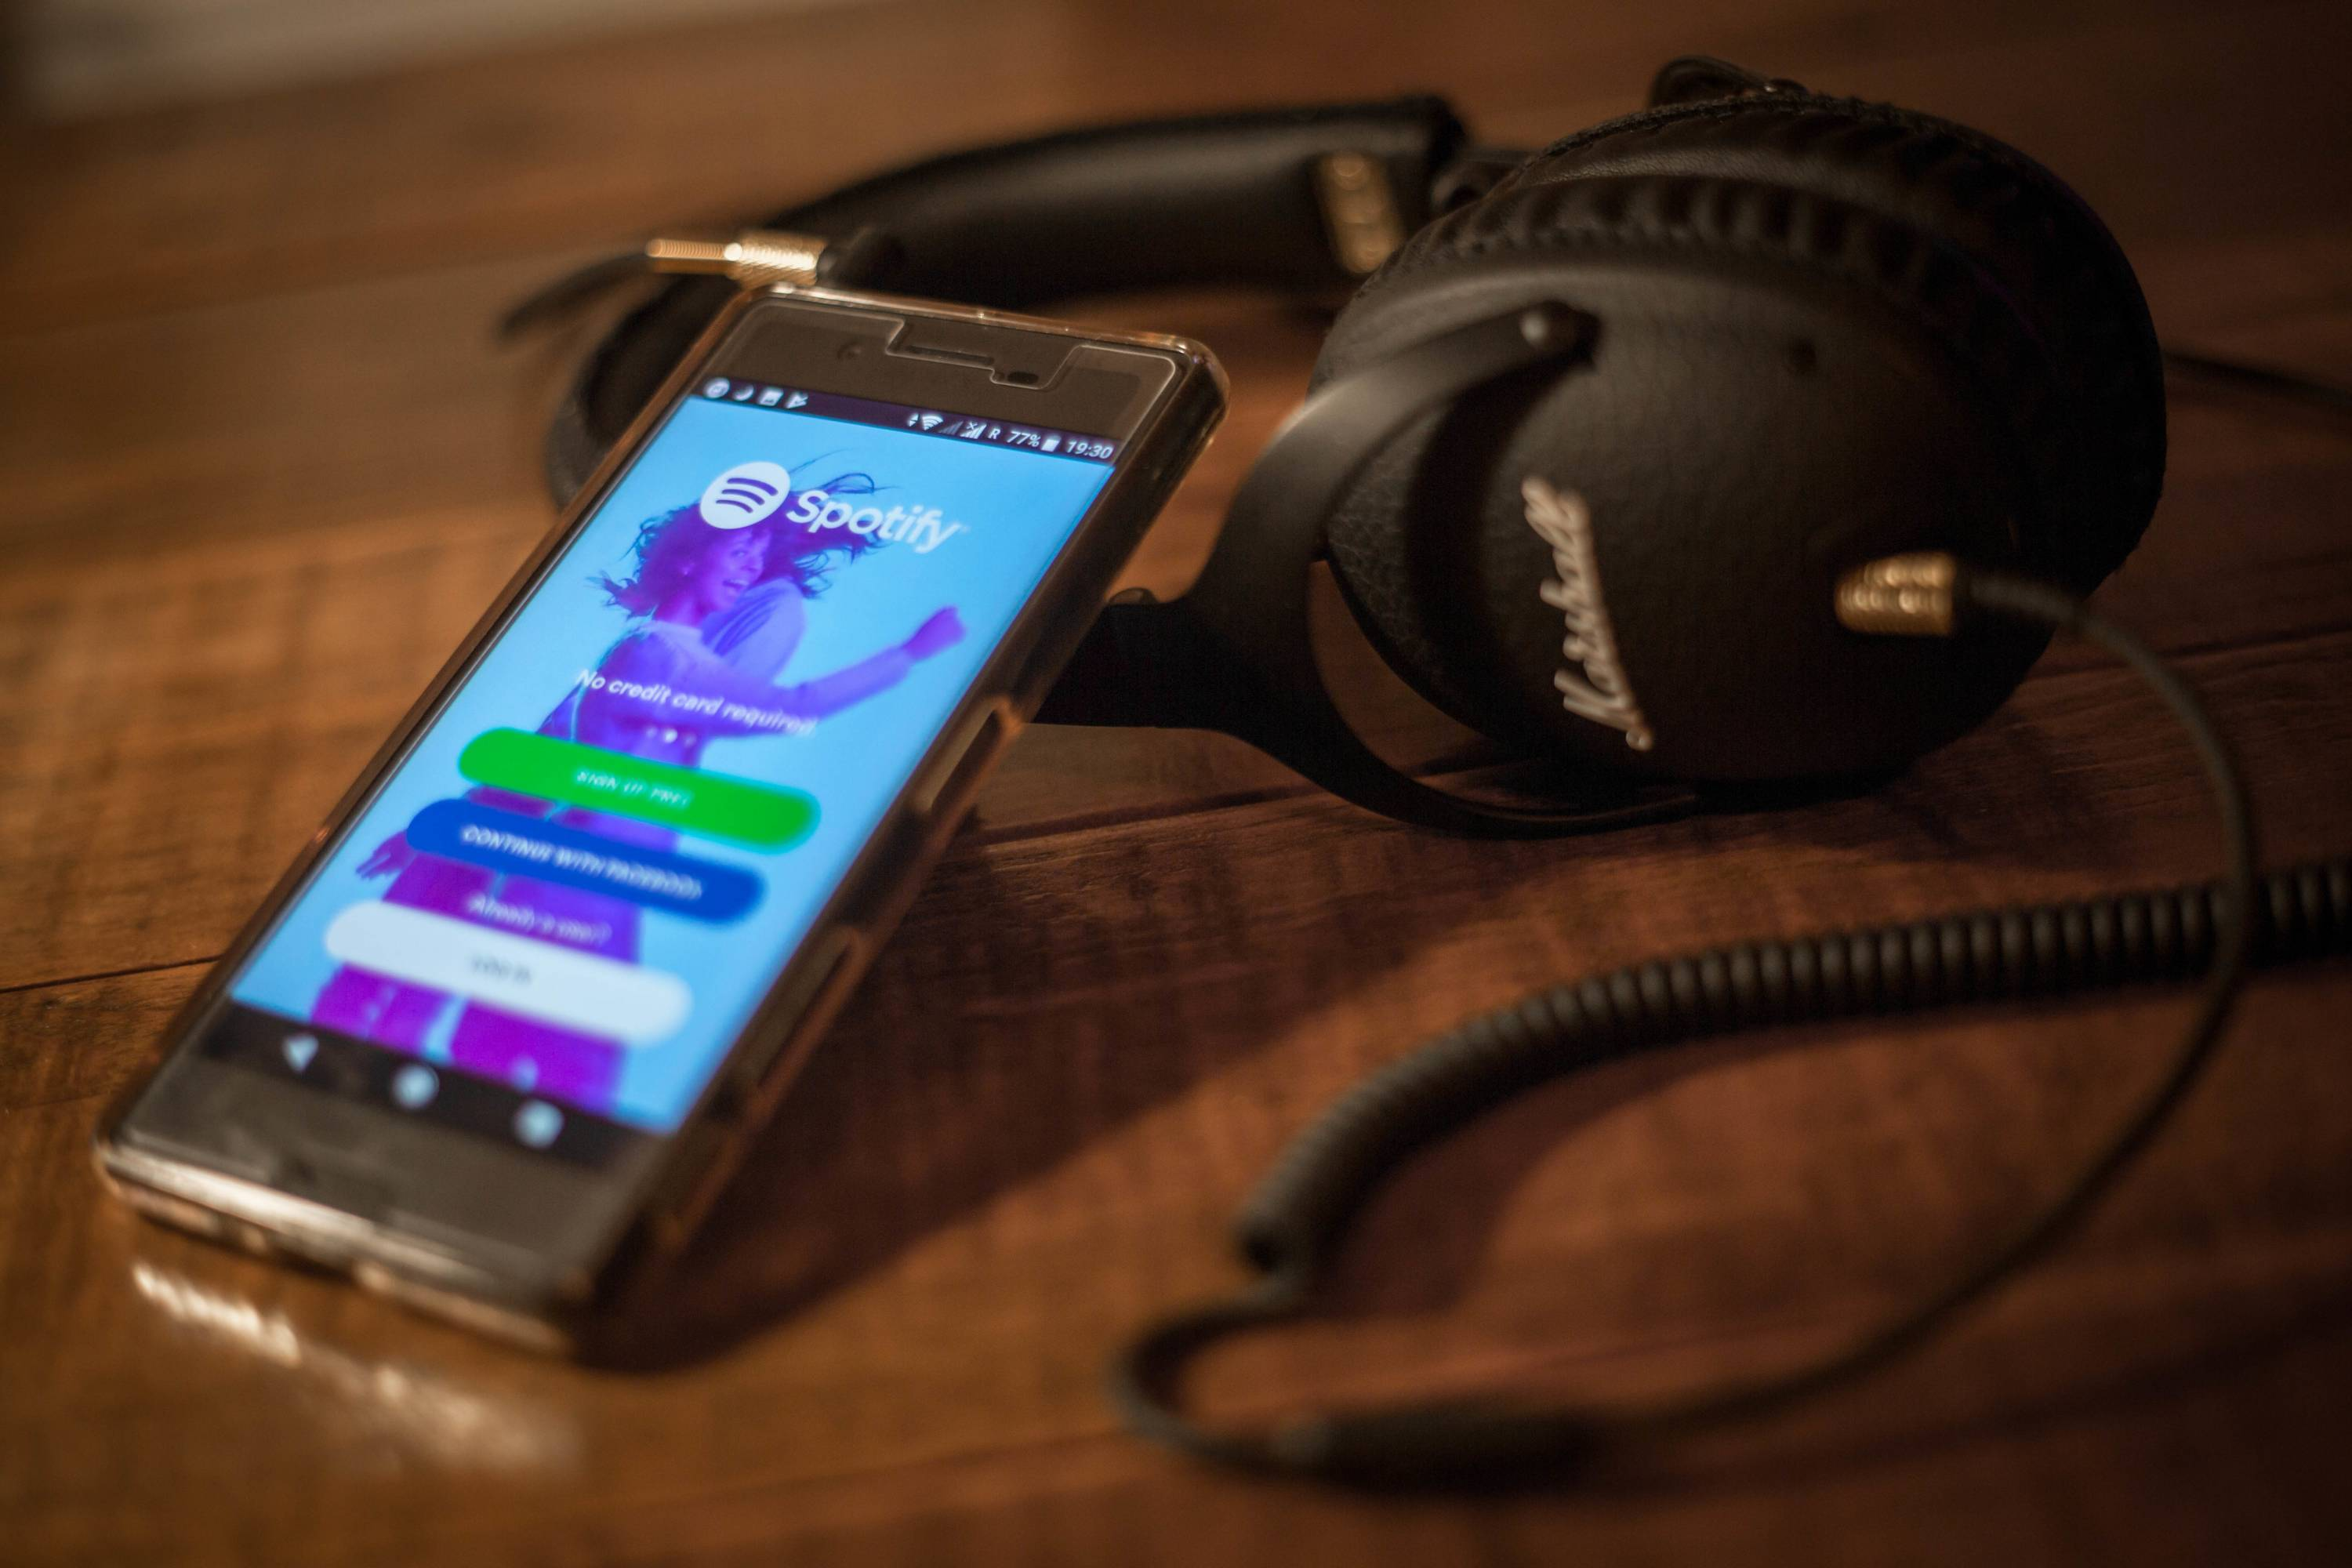 The Spotify application seen displayed on a Sony smartphone